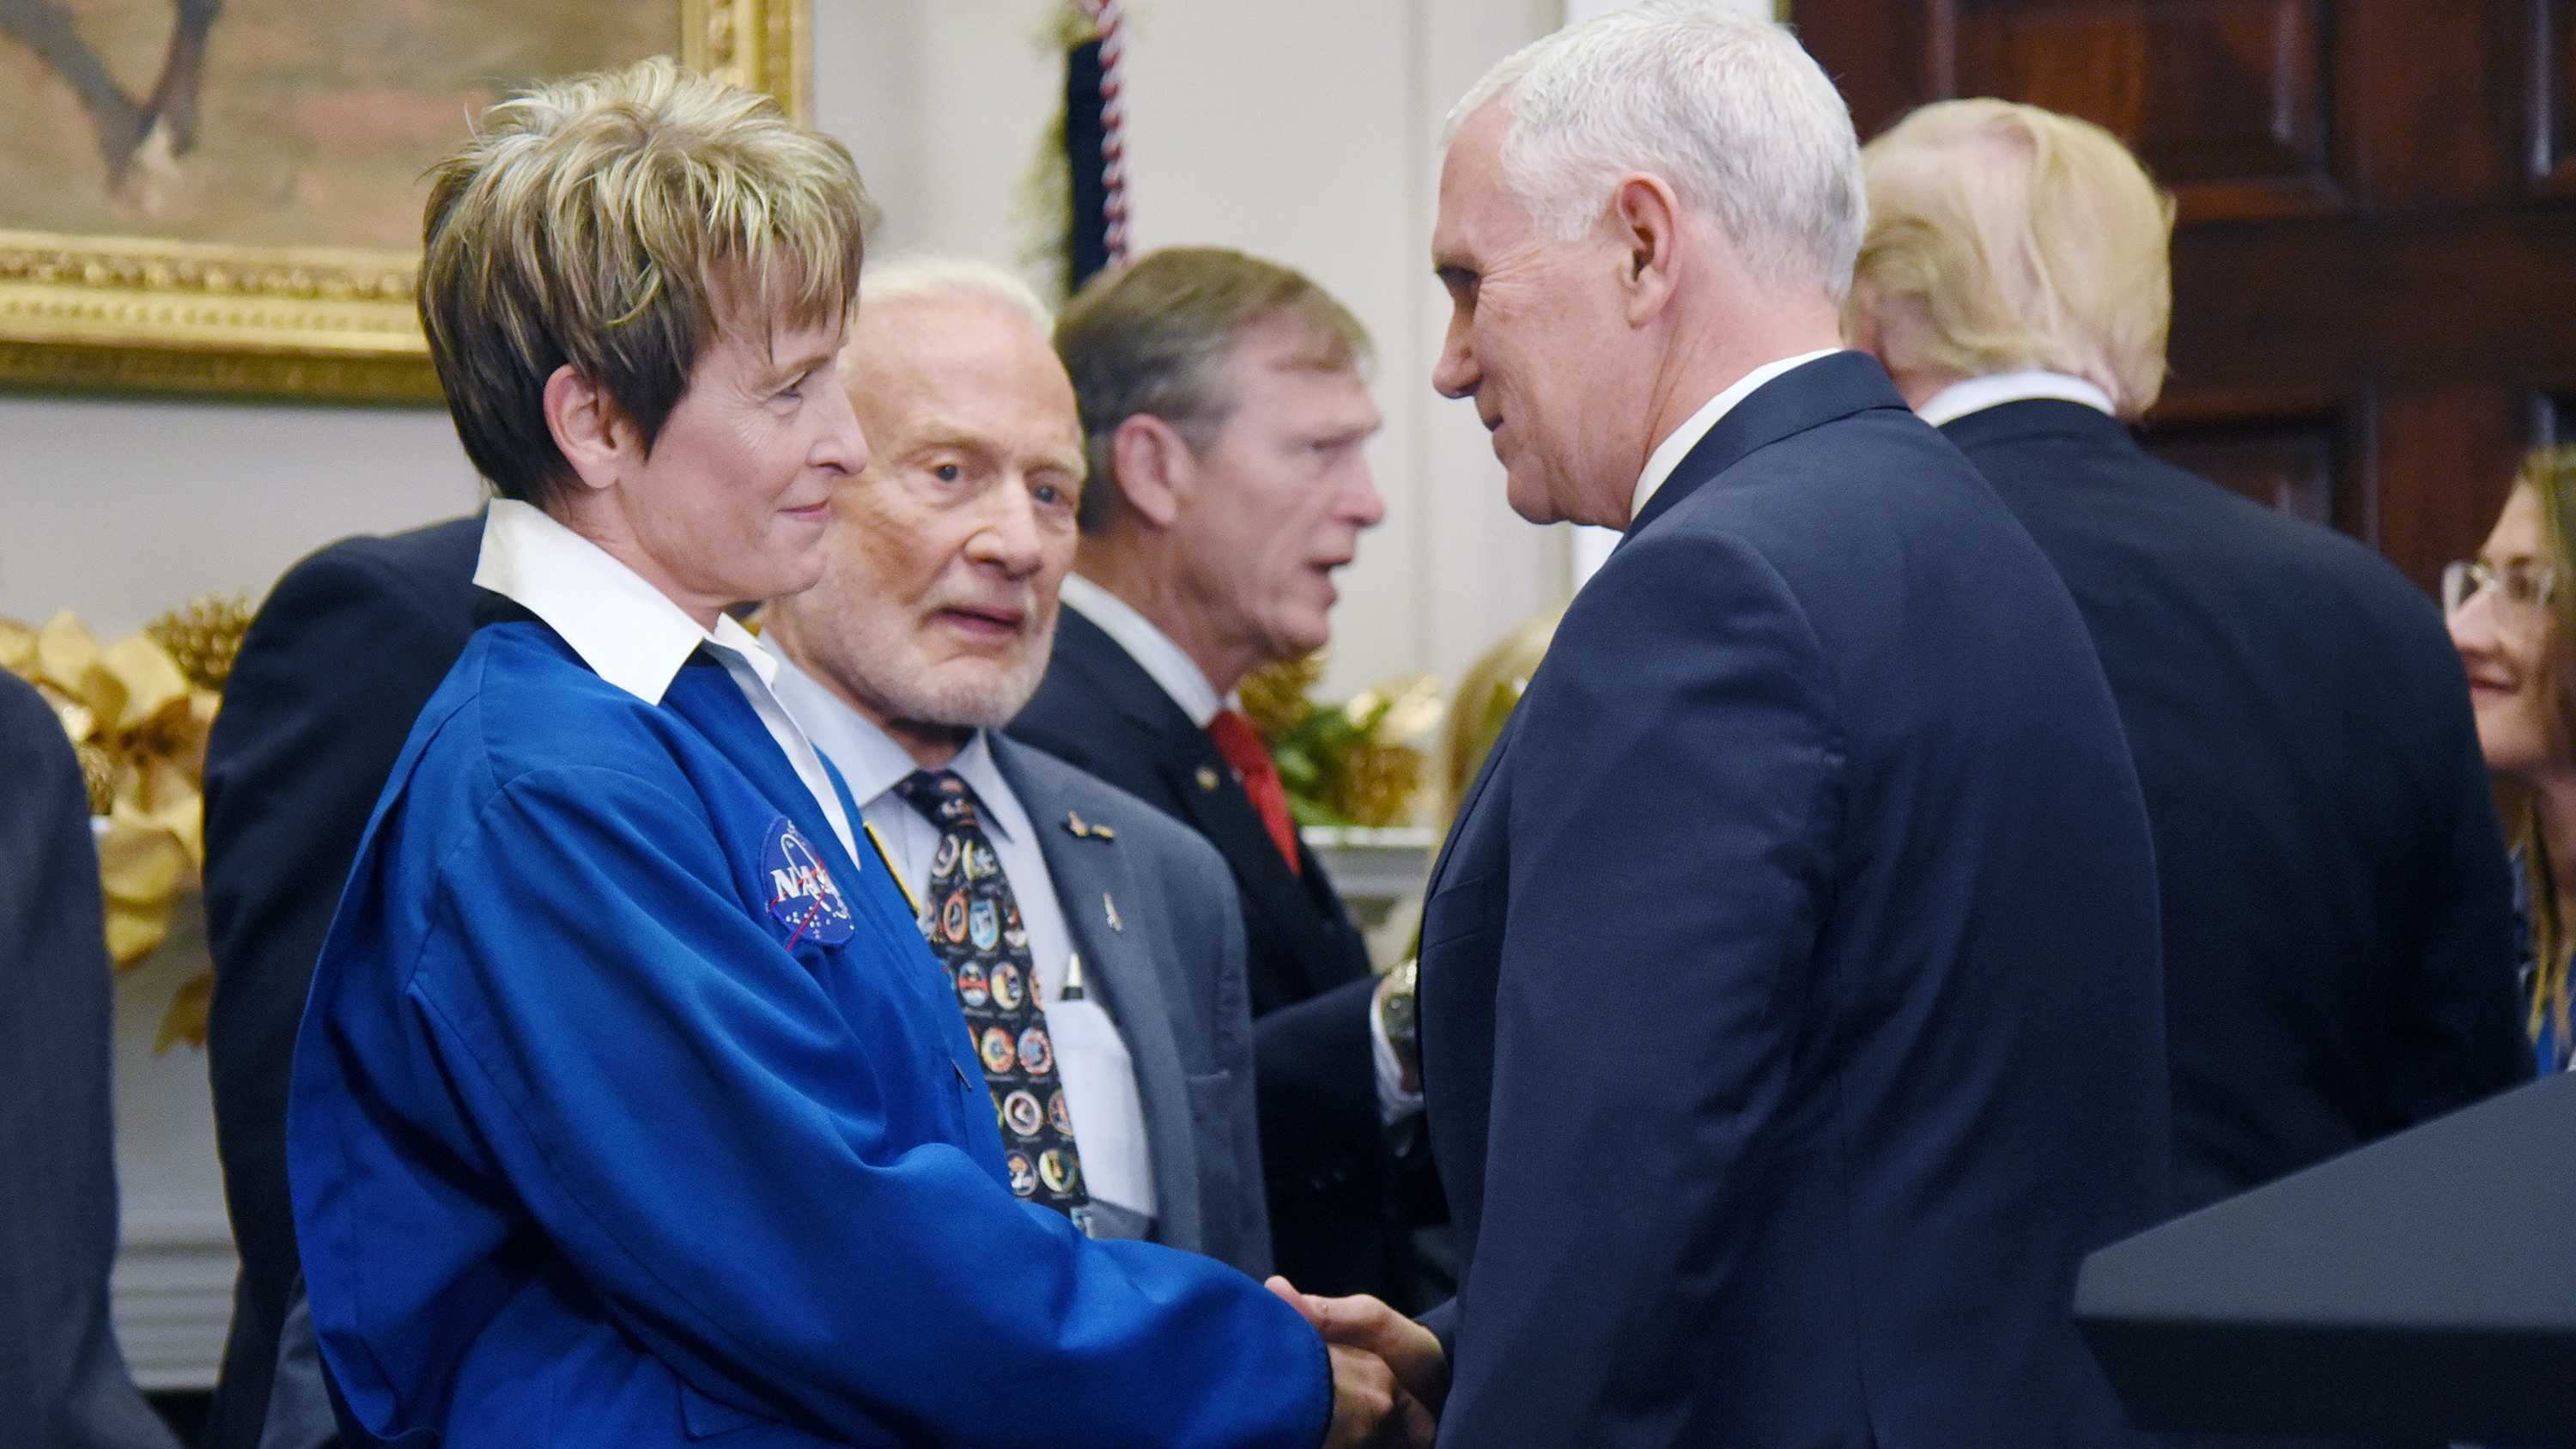 U.S. Vice President Mike Pence shakes hands with NASA astronaut Peggy Whitson, left, as former astronaut Buzz Aldrin looks on after a signing ceremony reinstating the National Space Council with the goal of sending American astronauts back to deep space during an event on Monday, Dec. 11, 2017 in the Roosevelt Room of the White House in Washington, D.C. (Olivier Douliery/Abaca Press/TNS)